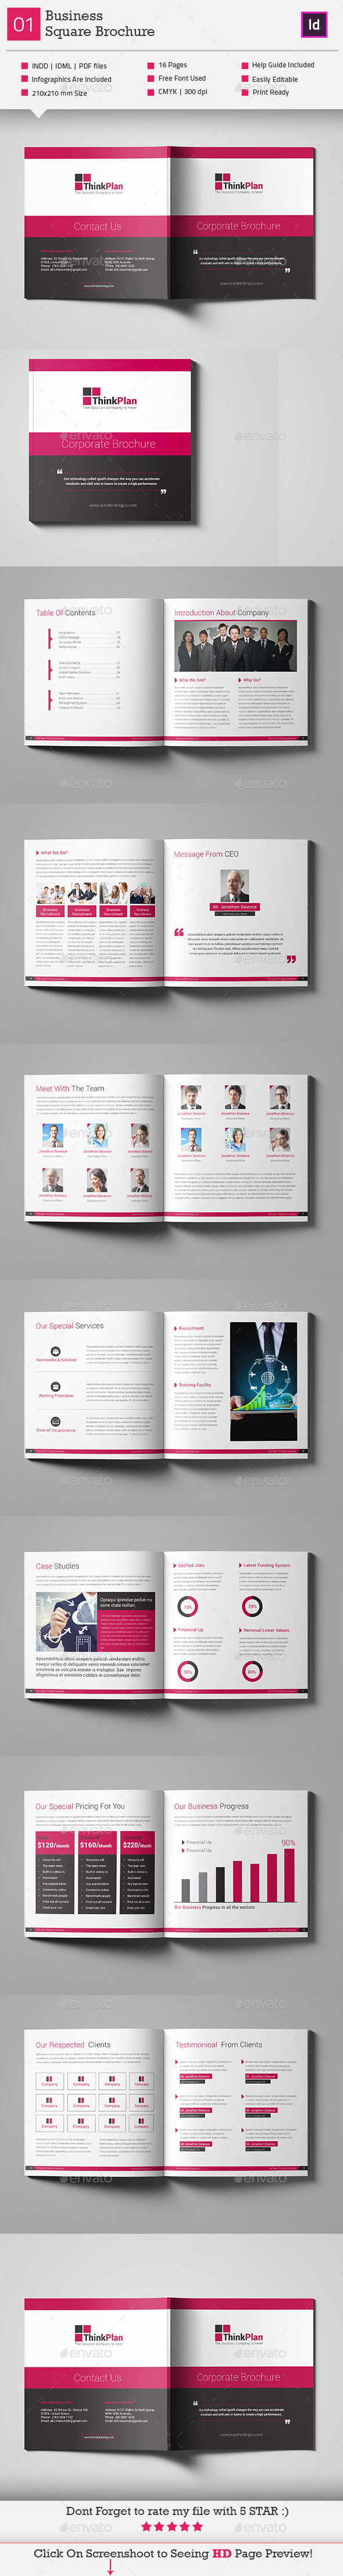 GraphicRiver Business Square Brochure Template V1 11229881